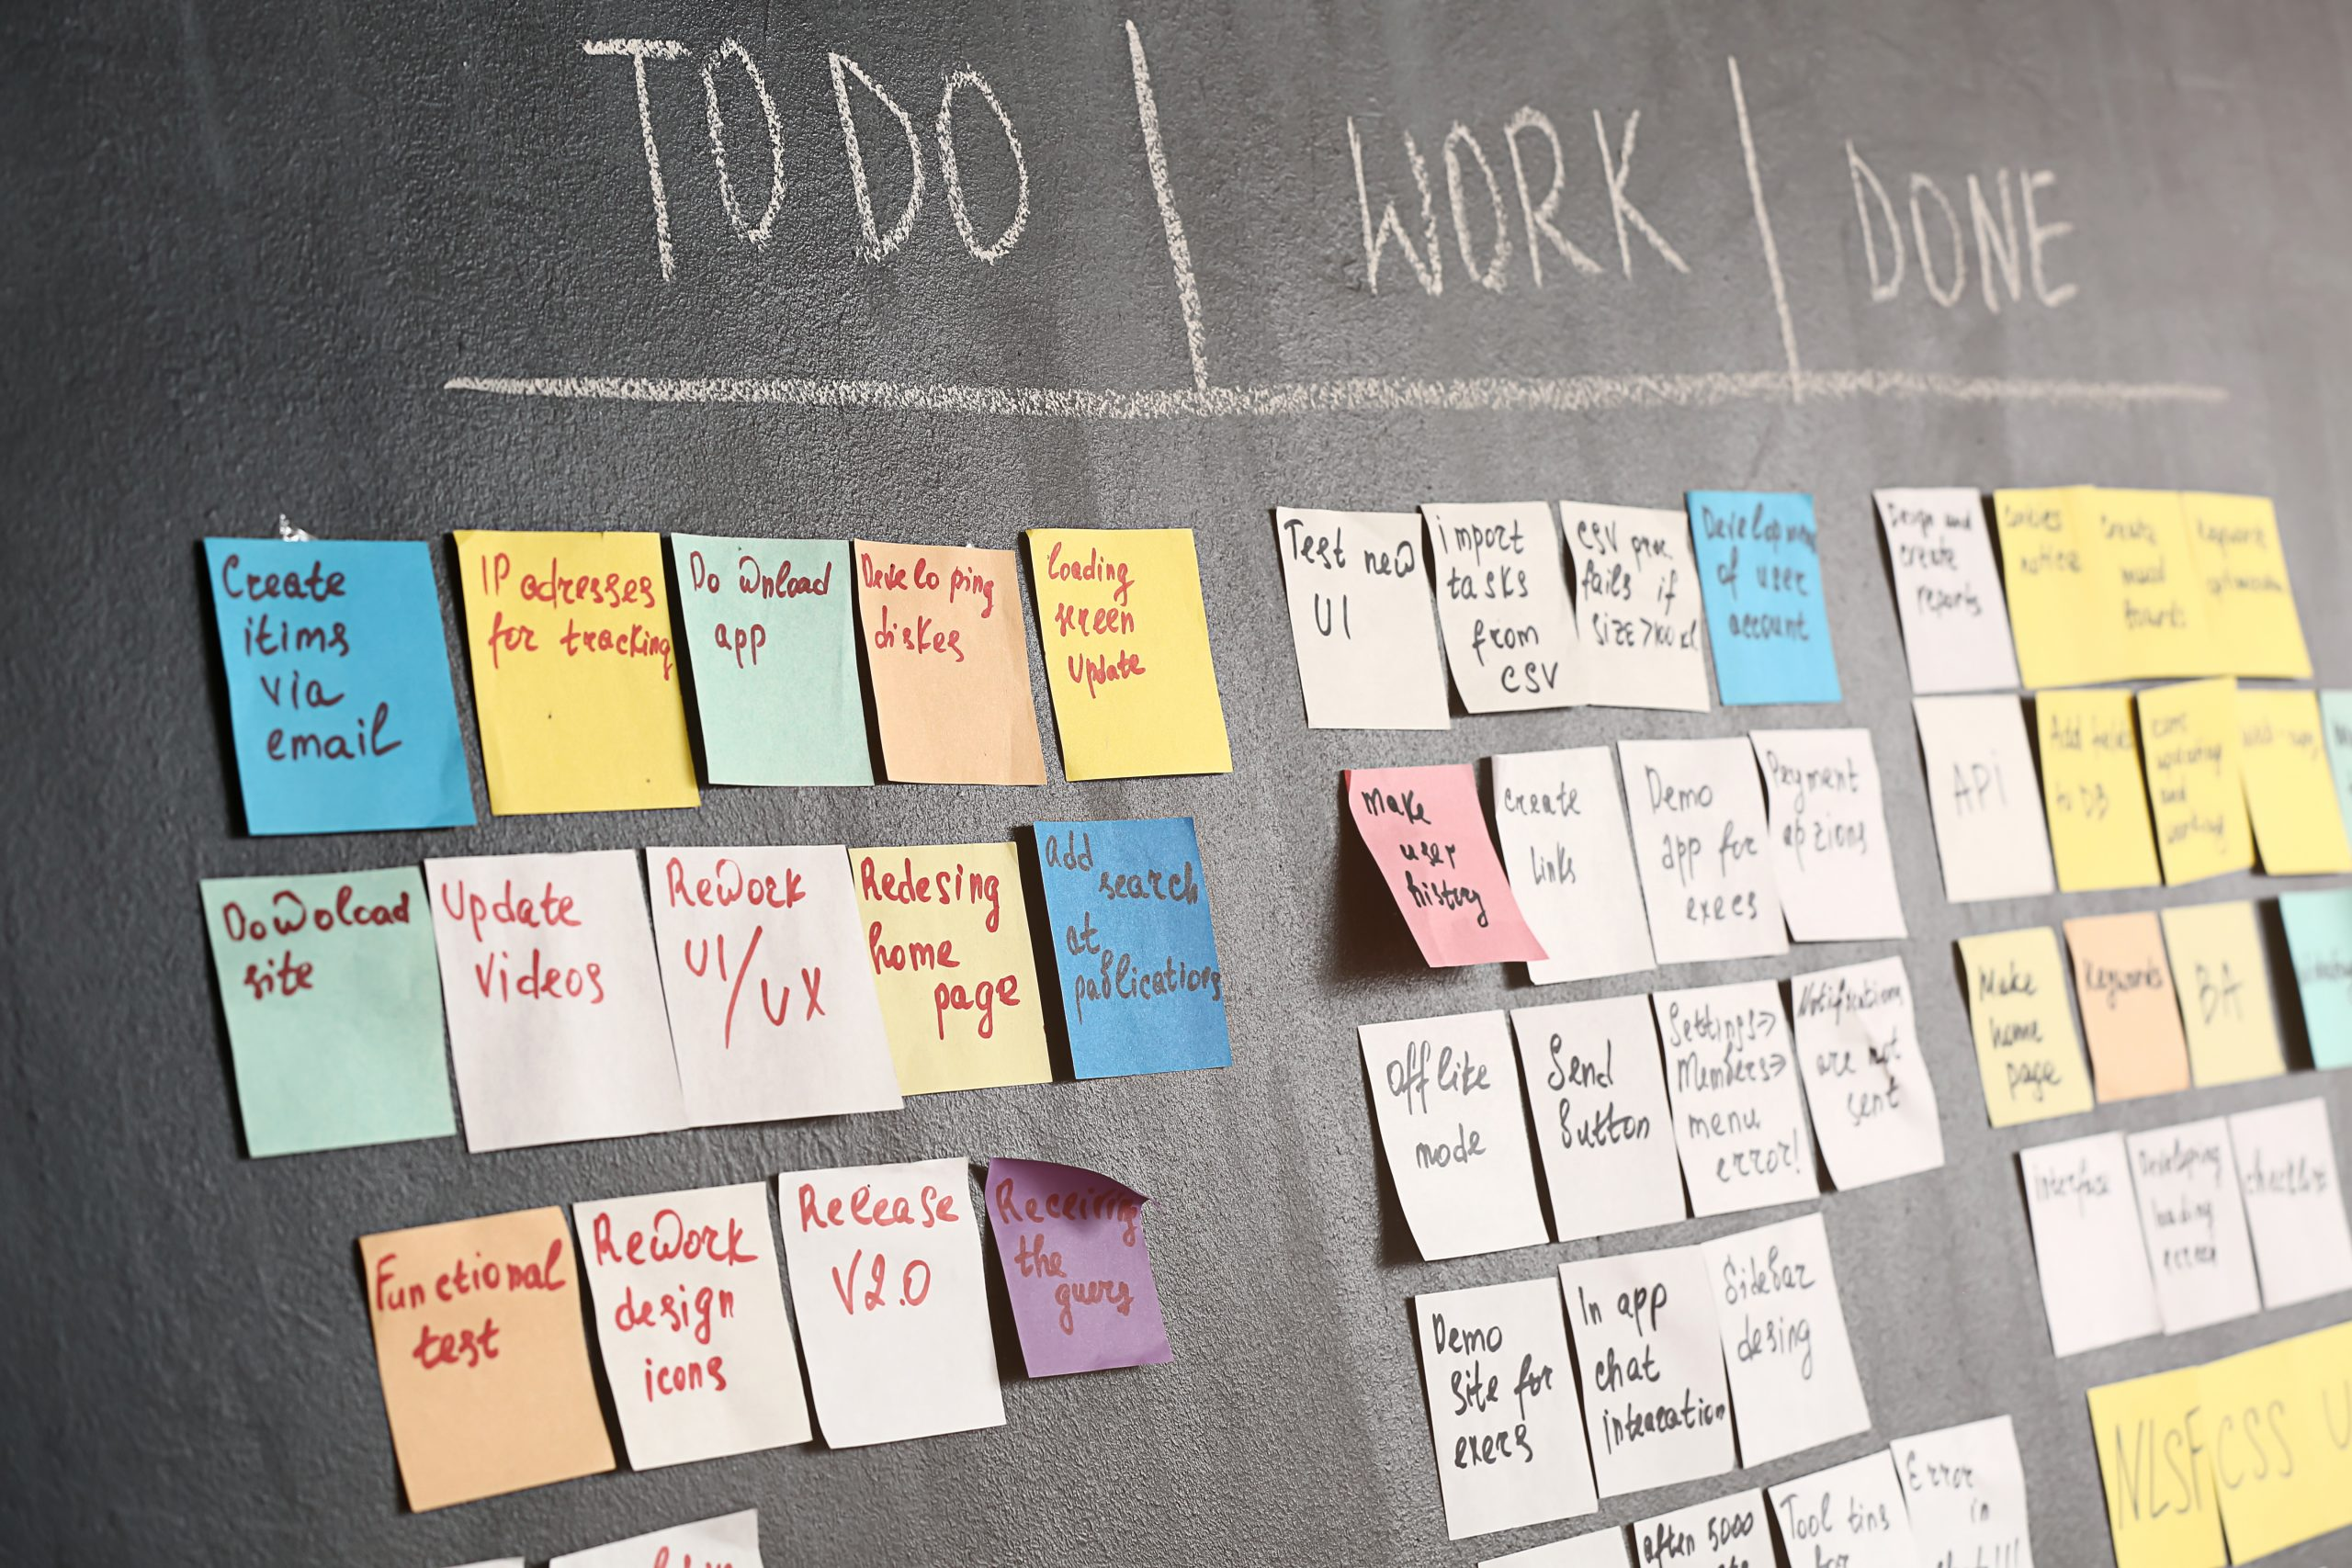 How to do Scrum right, 5-minute crash course